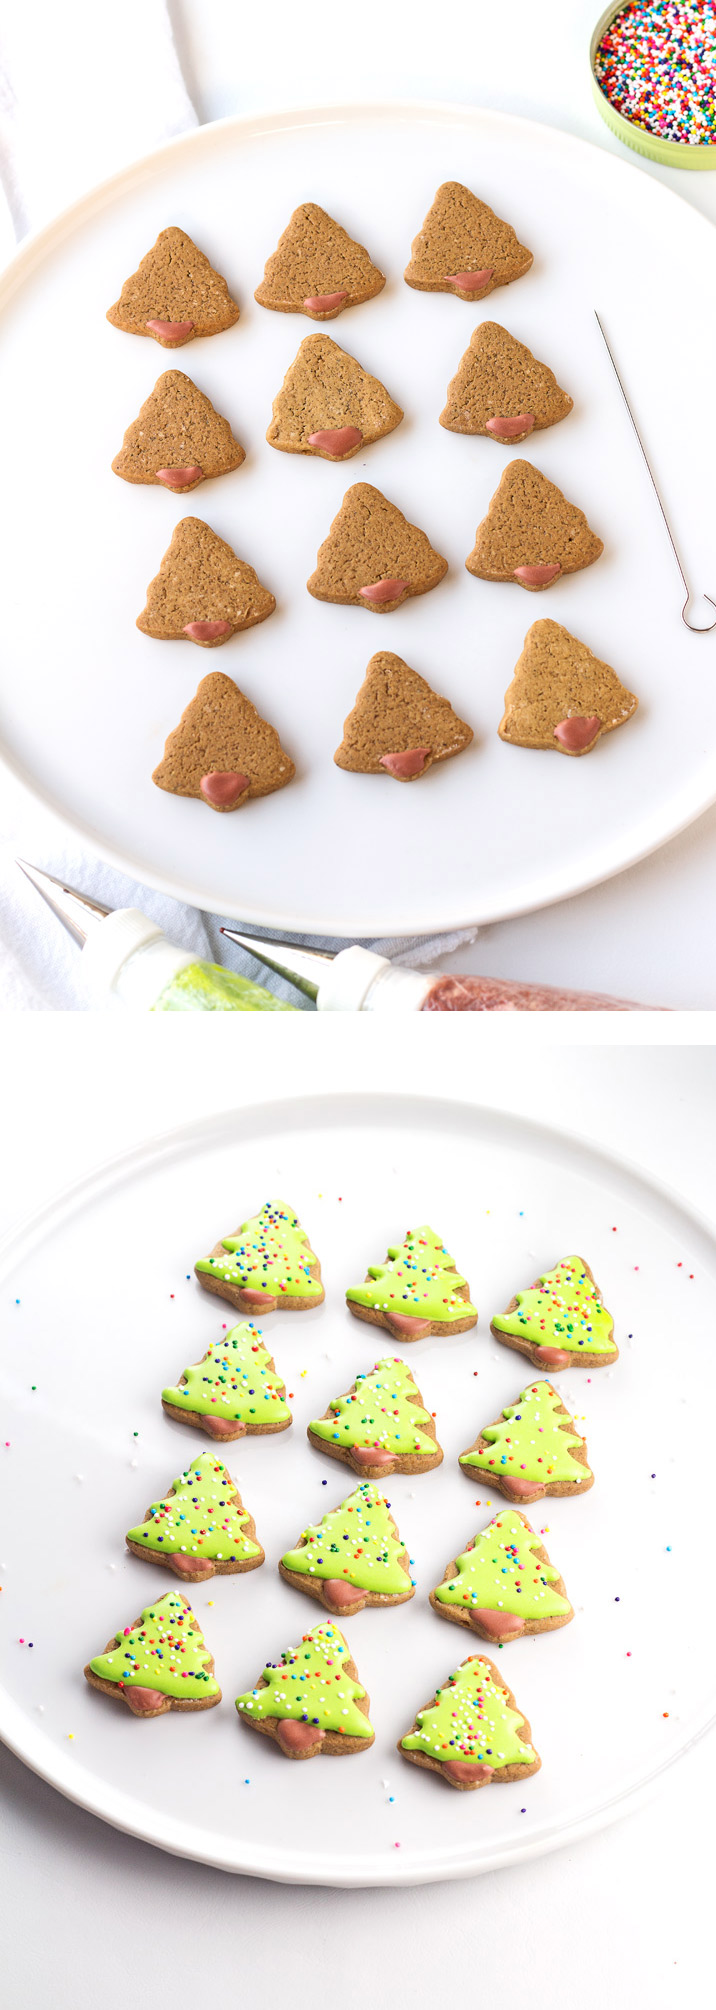 How to Make Gingerbread Pizza Cookies with a Simple How to Video | The Bearfoot Baker